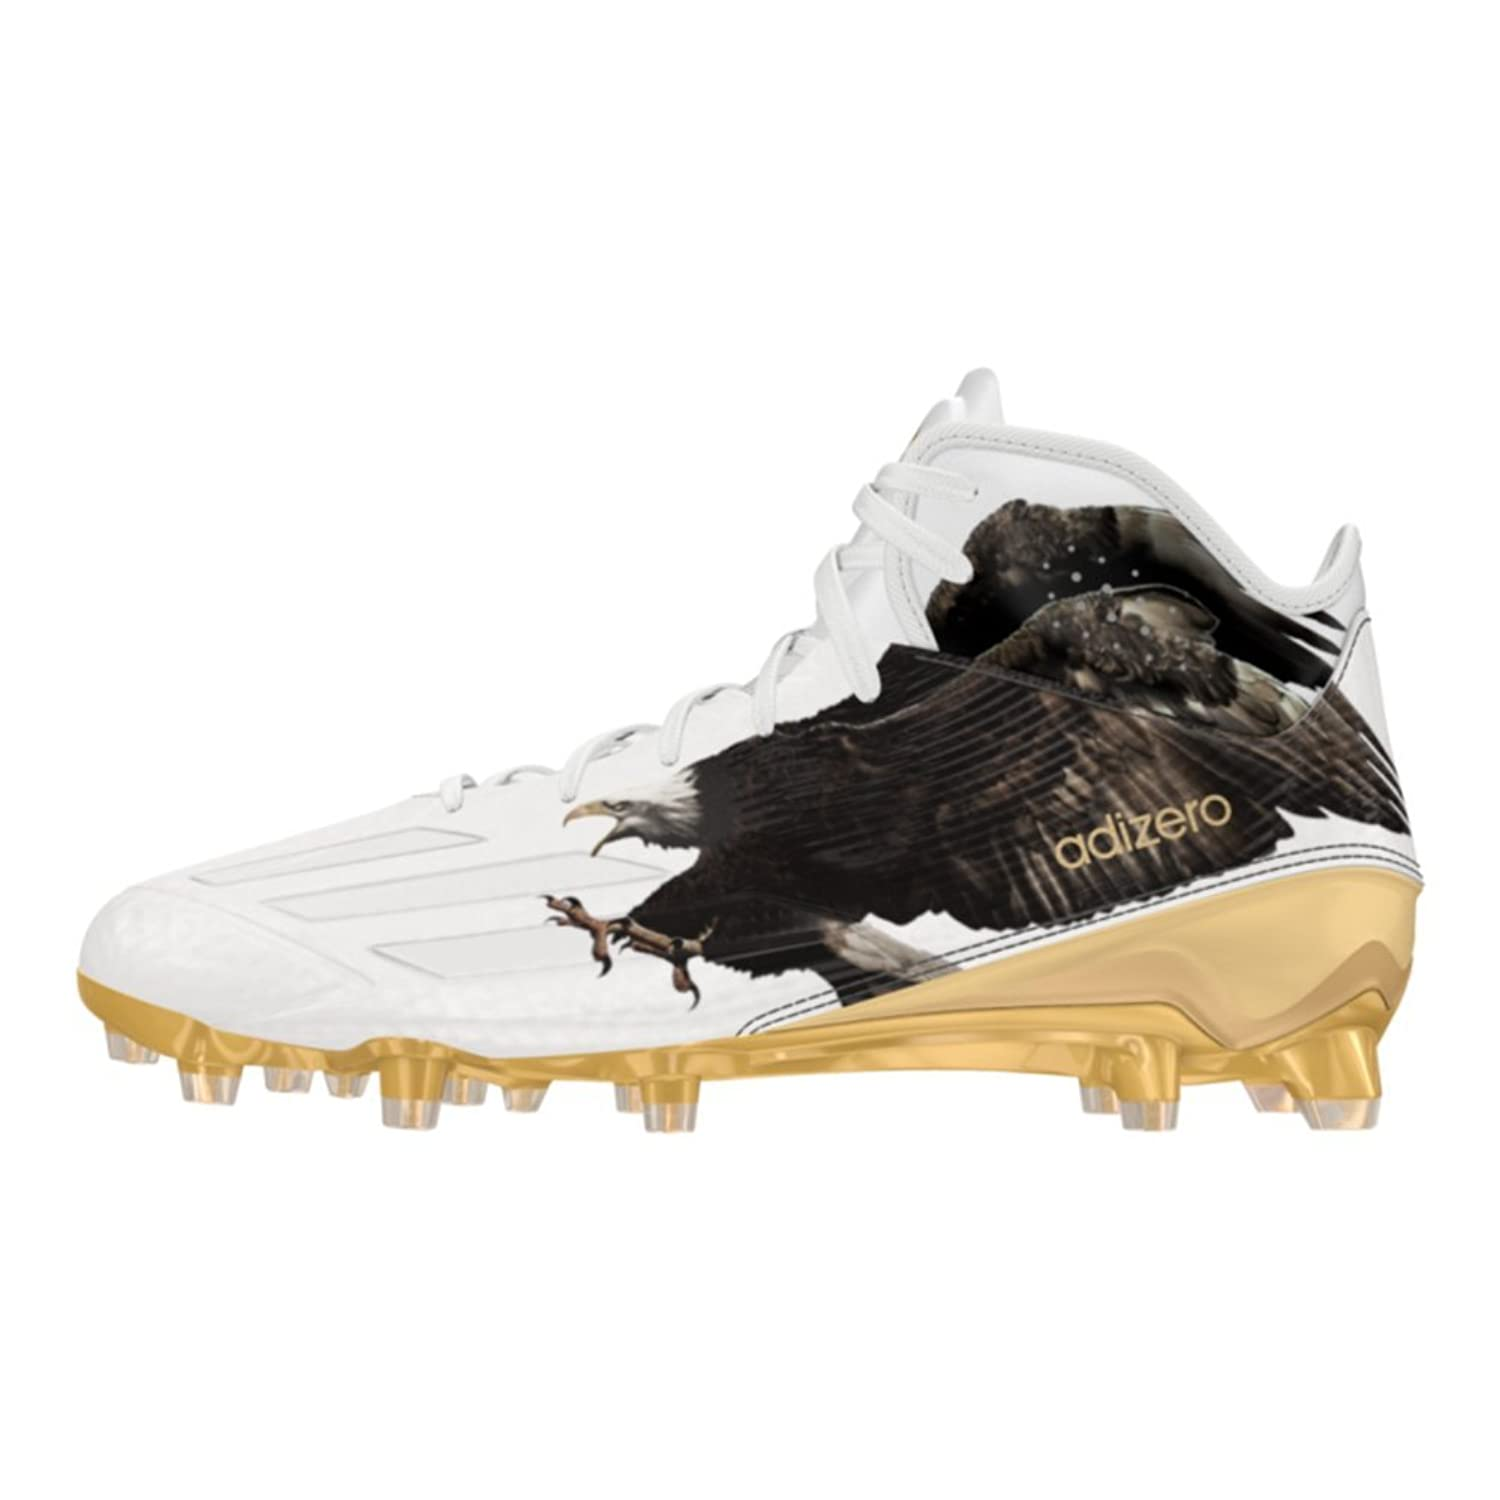 newest 25544 e5d48 low-cost Adidas Adizero 5Star 5.0 Uncaged Mid Mens Football Cleat 14 Eagle- White